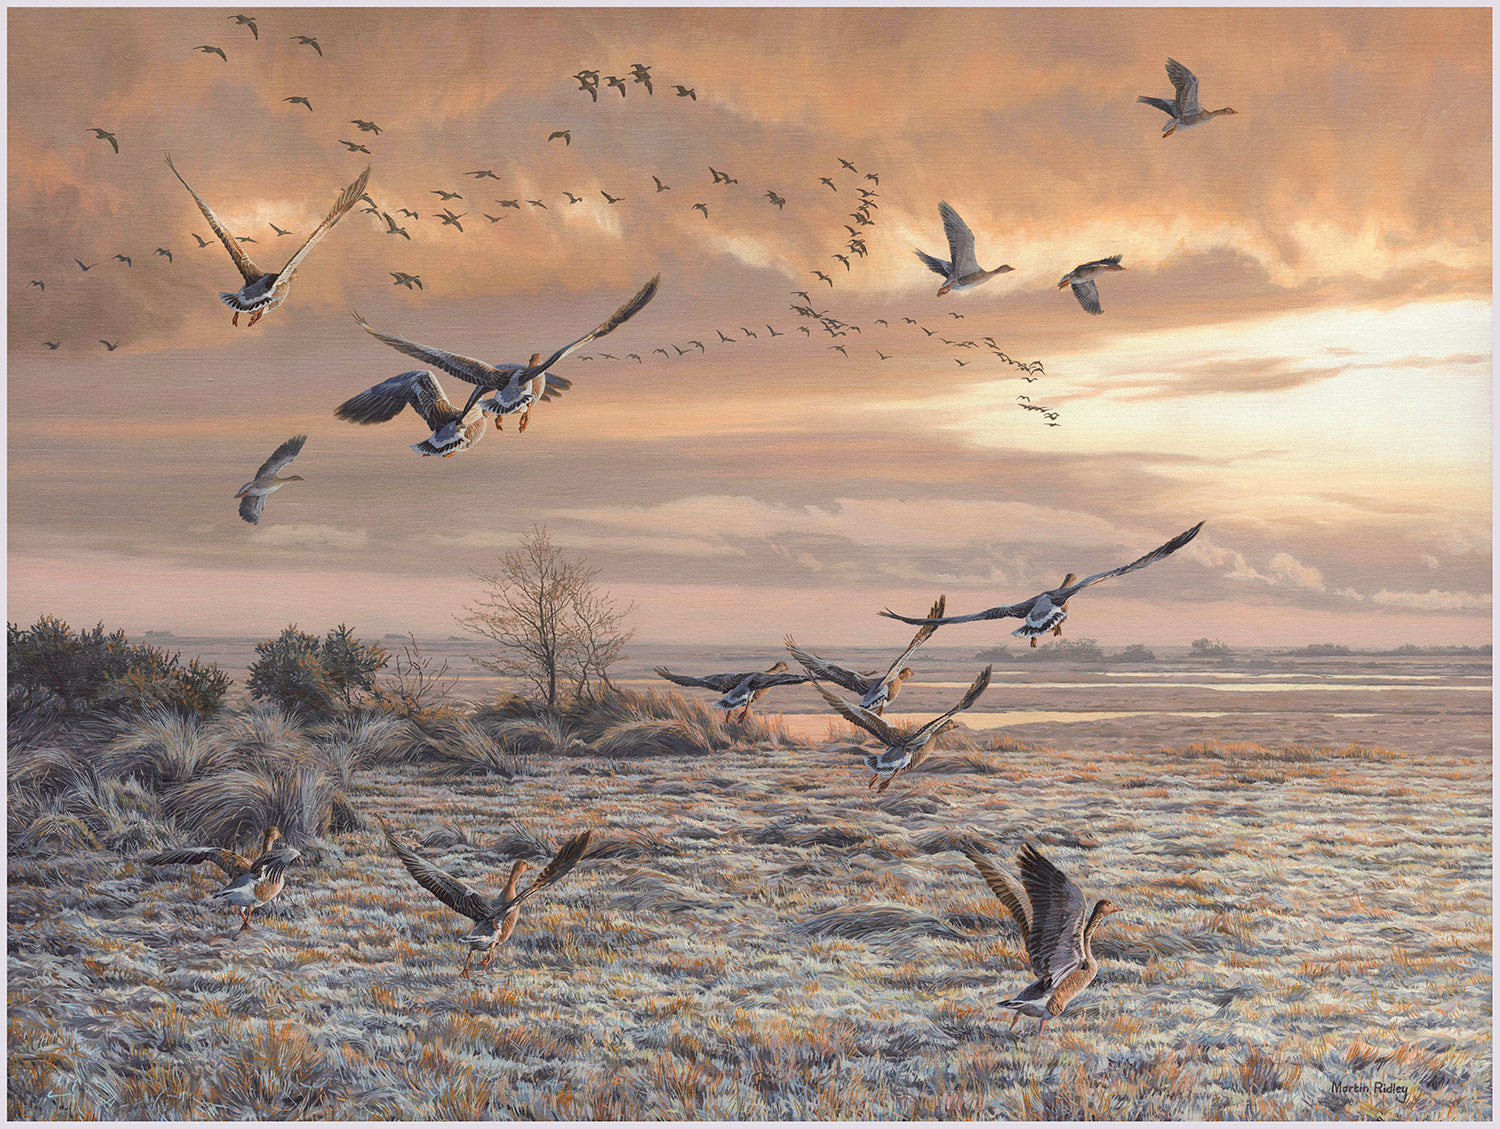 Print of Greylag geese lifting up from frosty marshland